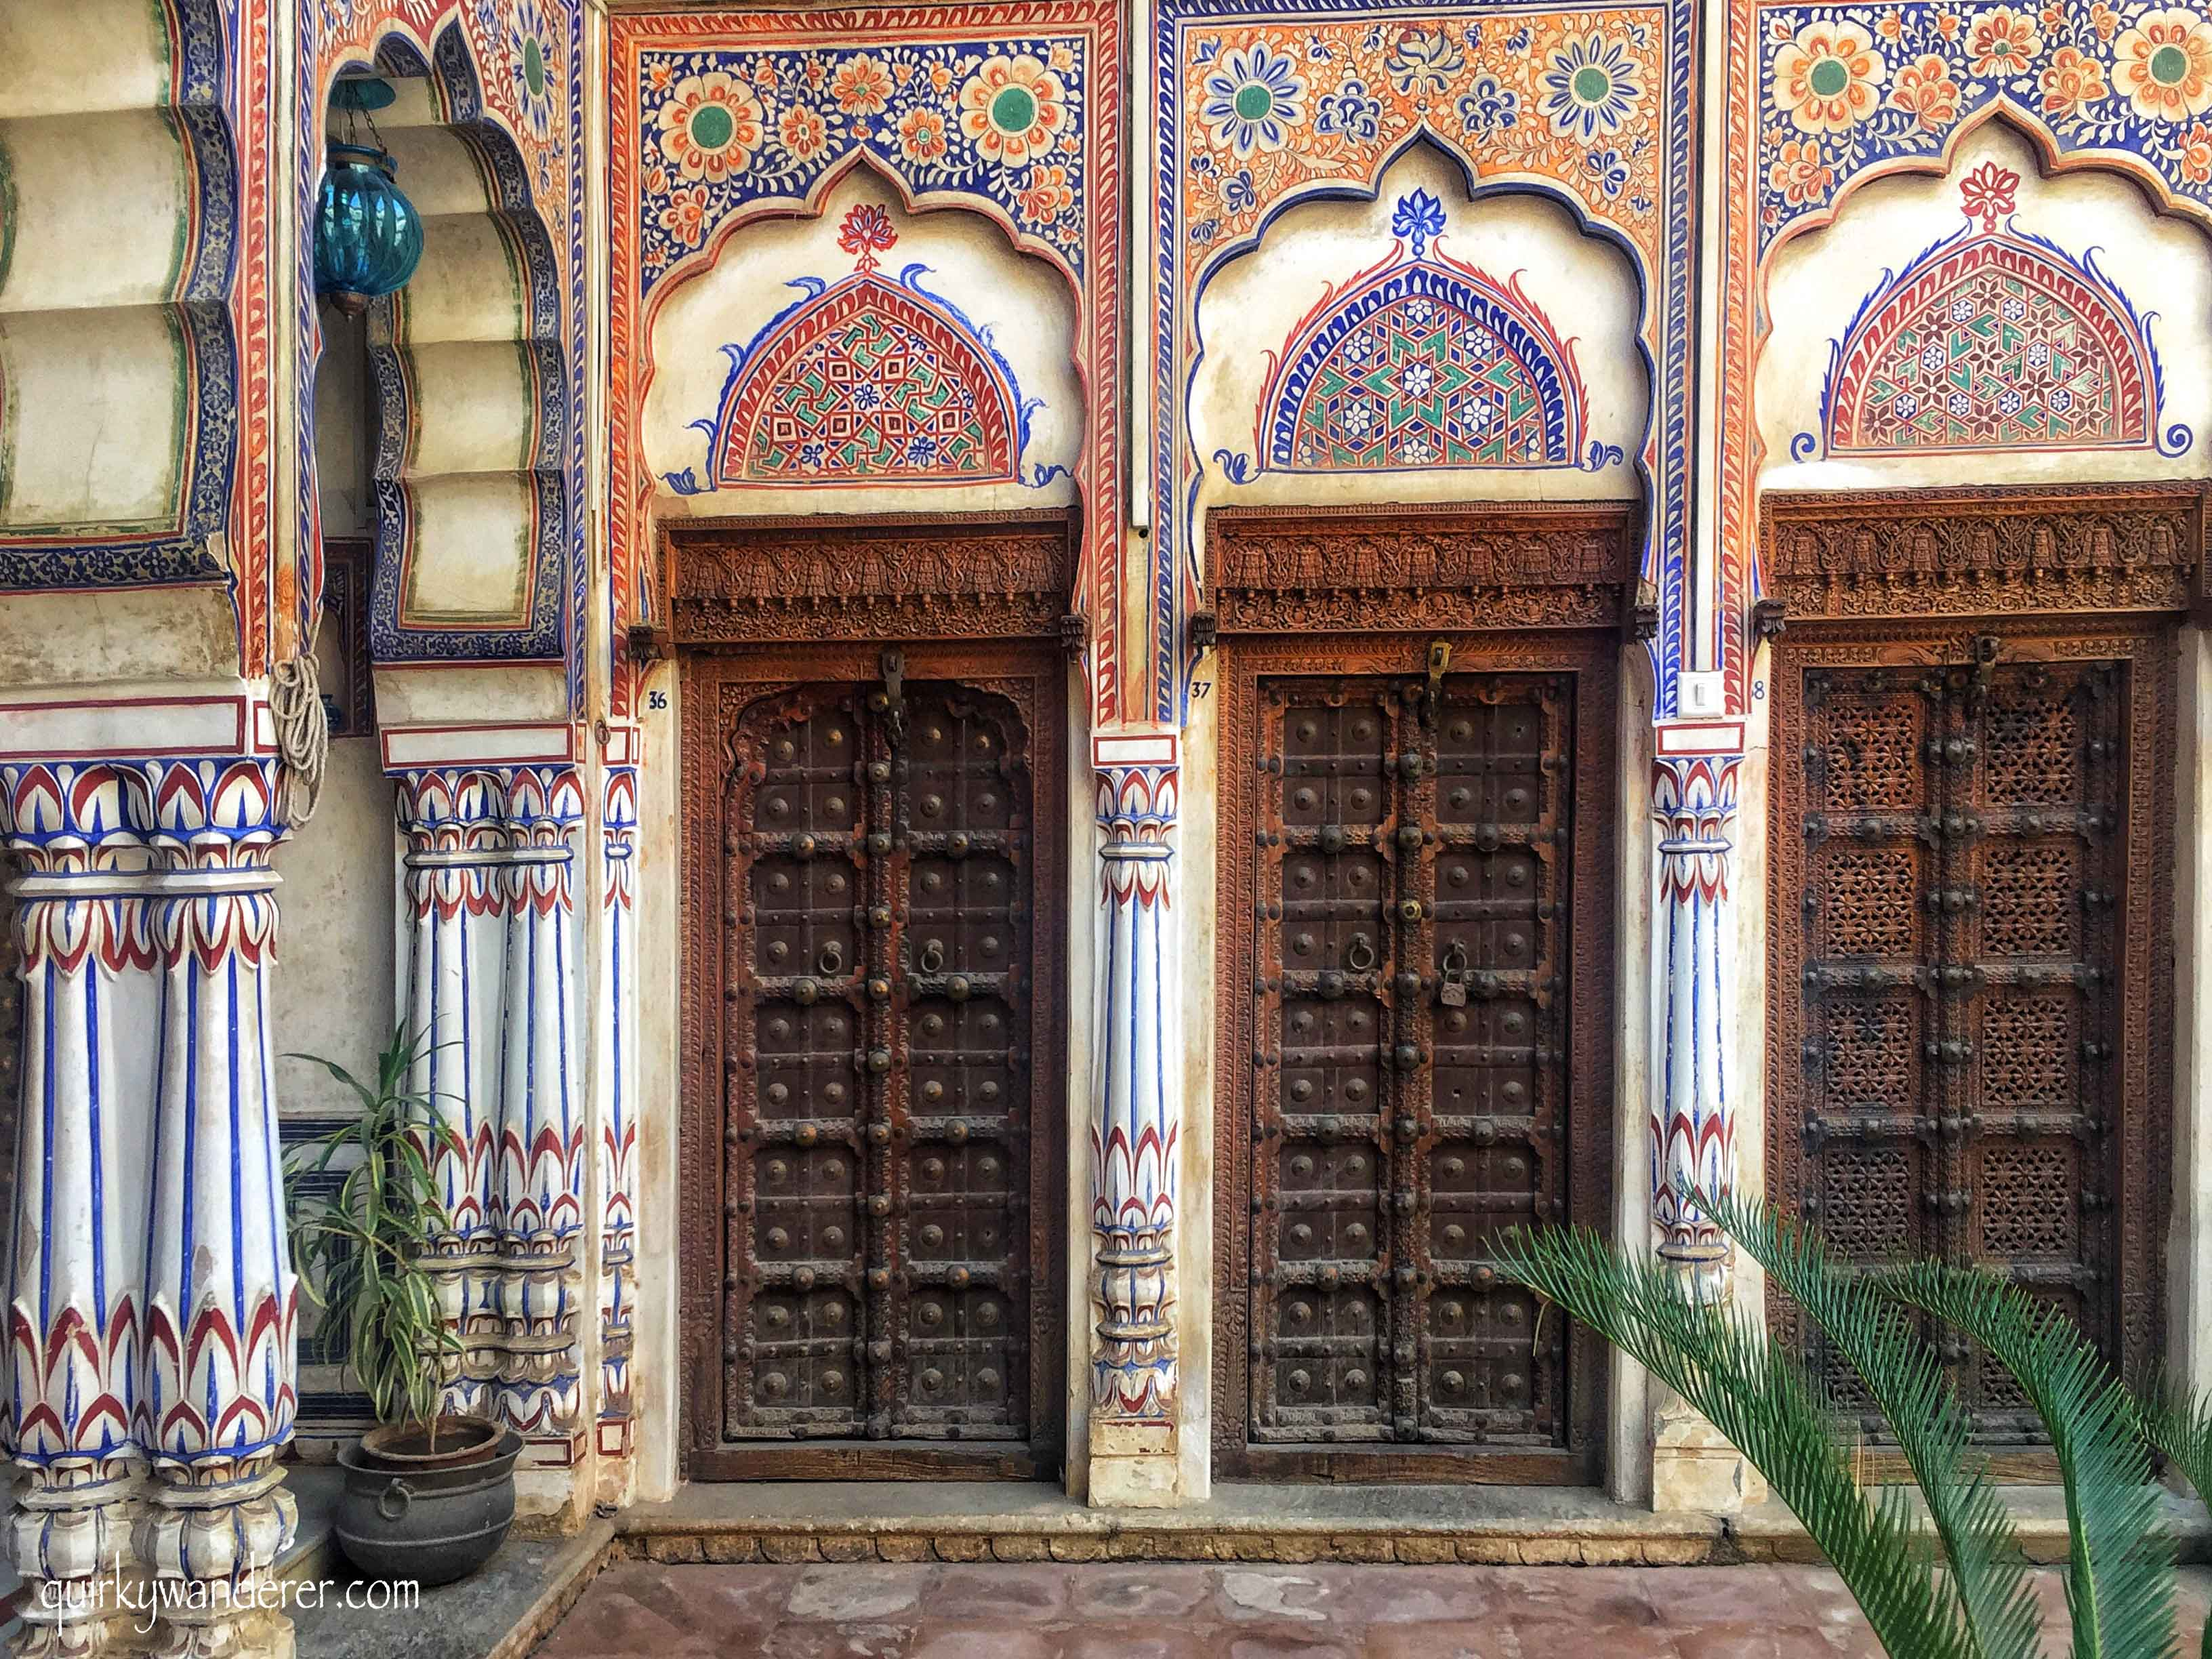 Best things to do in Shekhawati